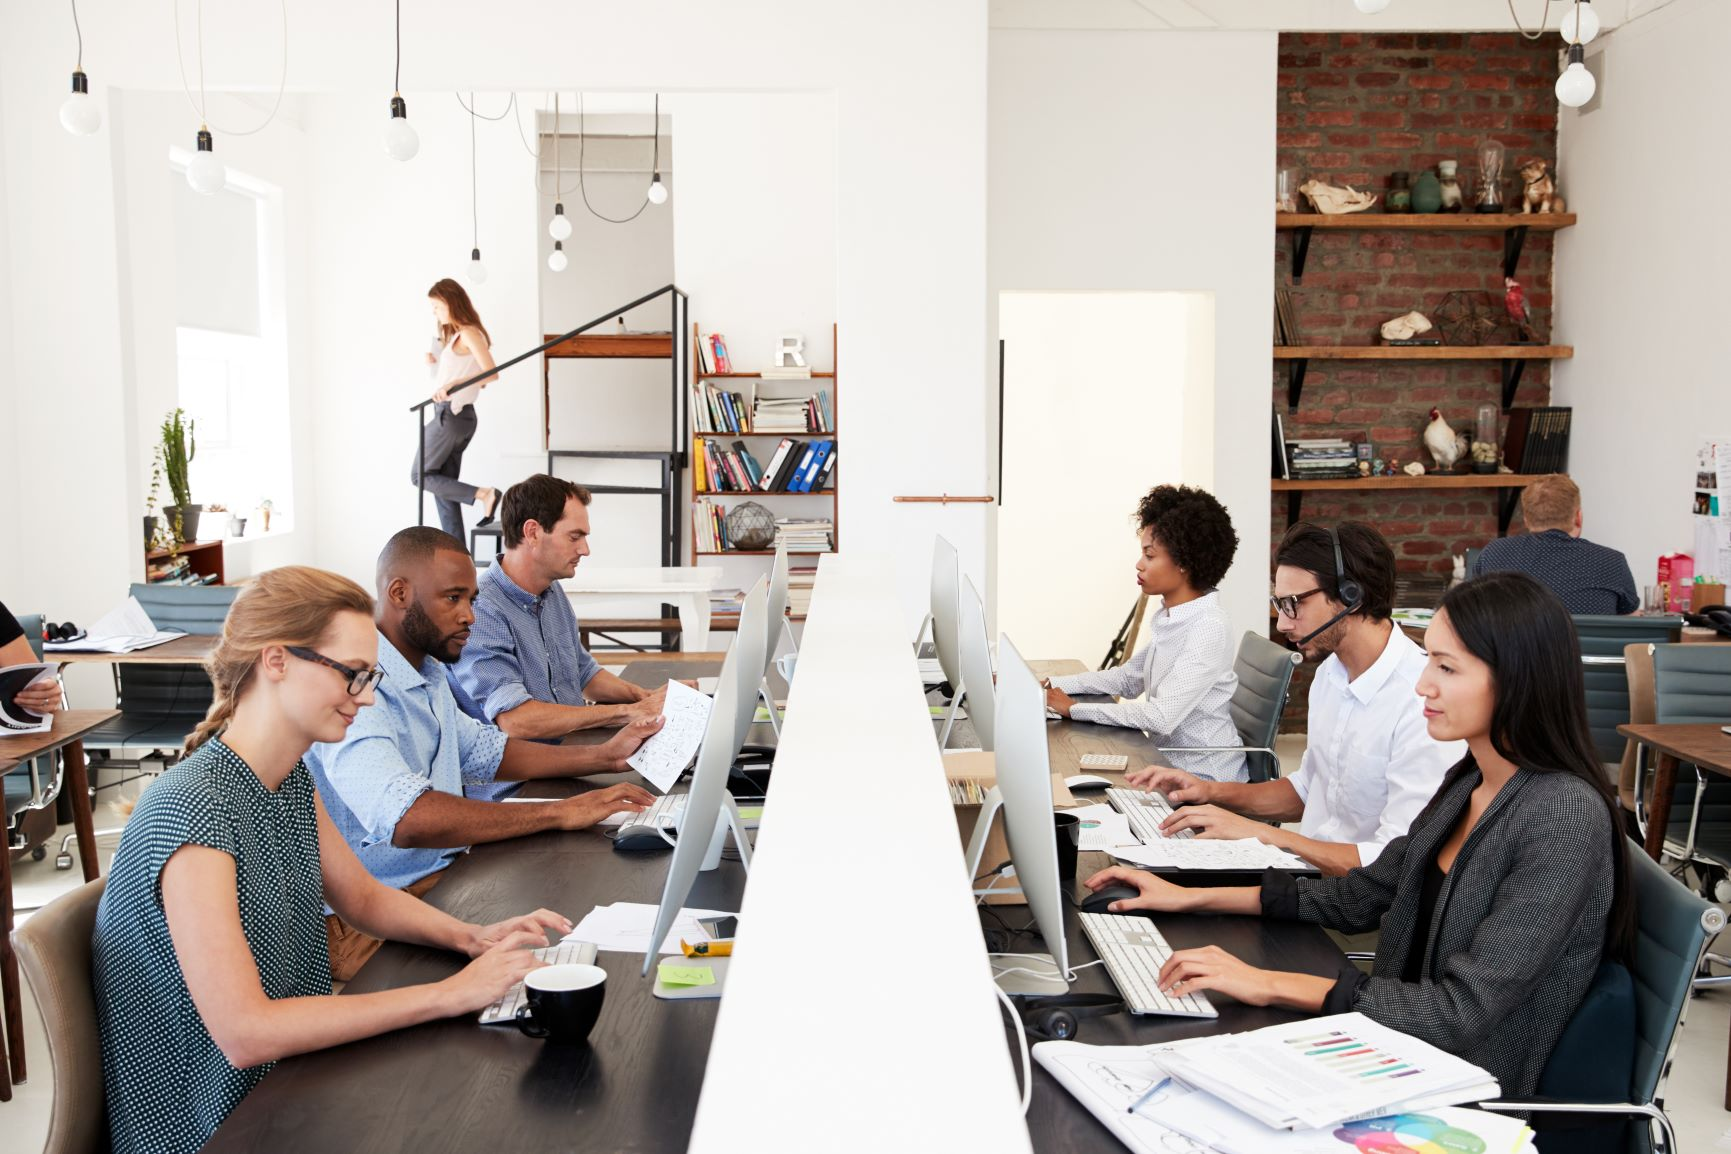 COLLABORATION OPPURTUNITIES ANOTHER KEY FACTOR IN CO-WORKING INDUSTRY BOOM